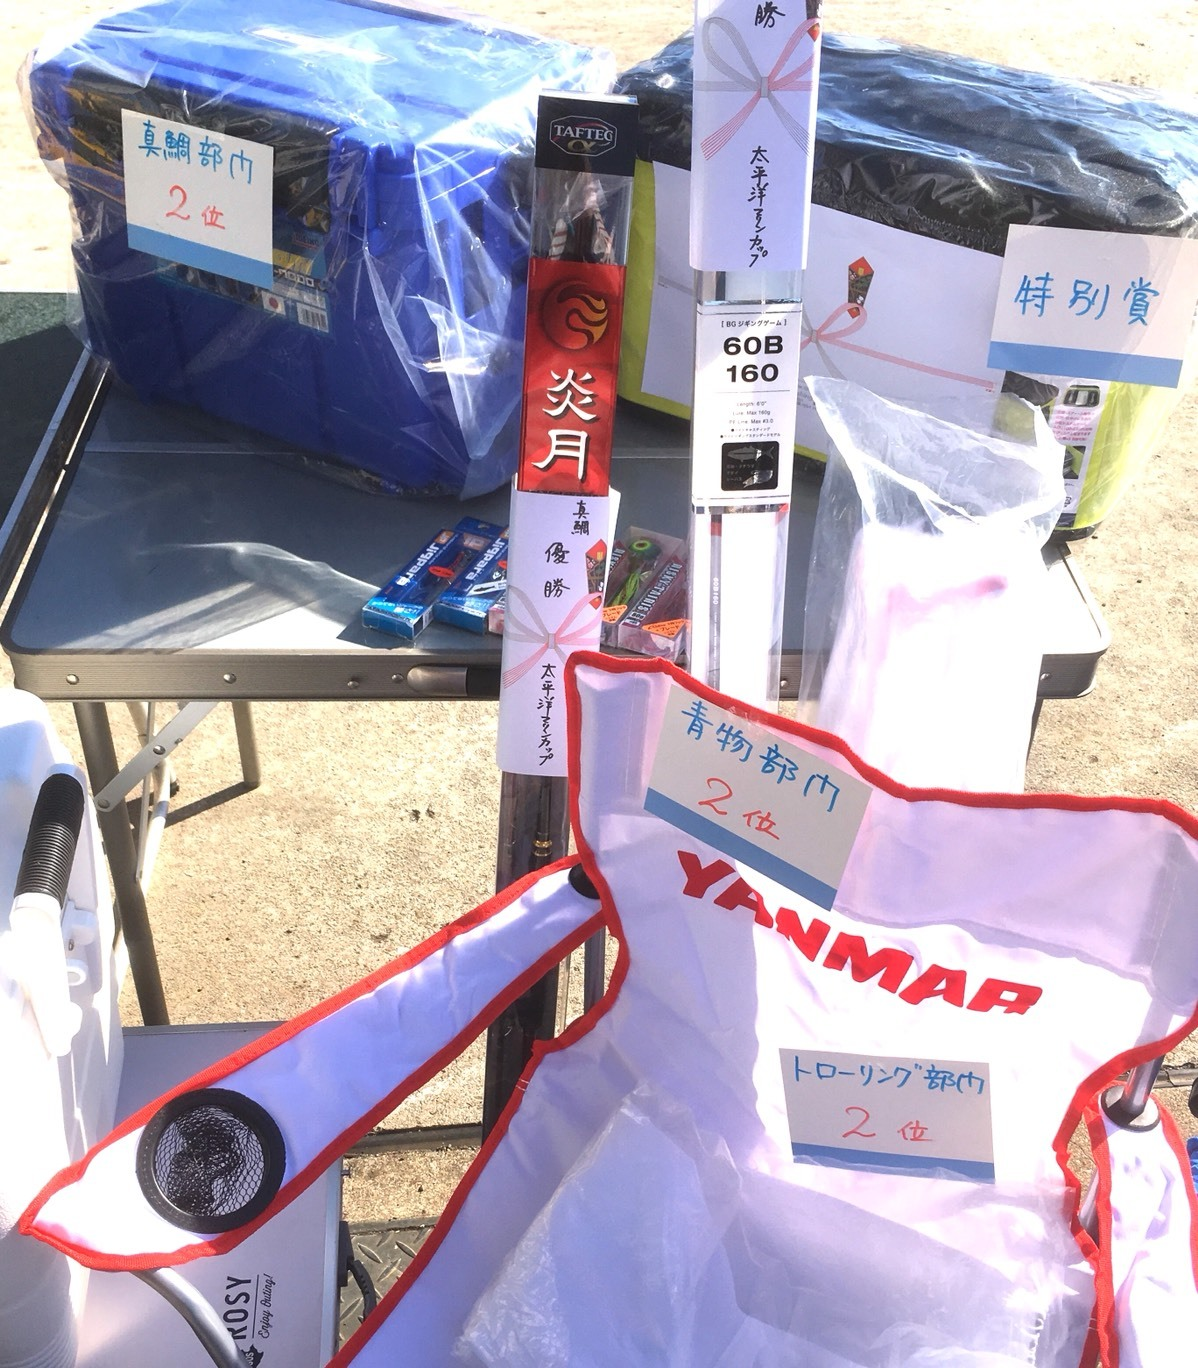 BOAY GAME FISHING in 高知 太平洋マリンcup 2018 レポート!_a0132631_15500060.jpg